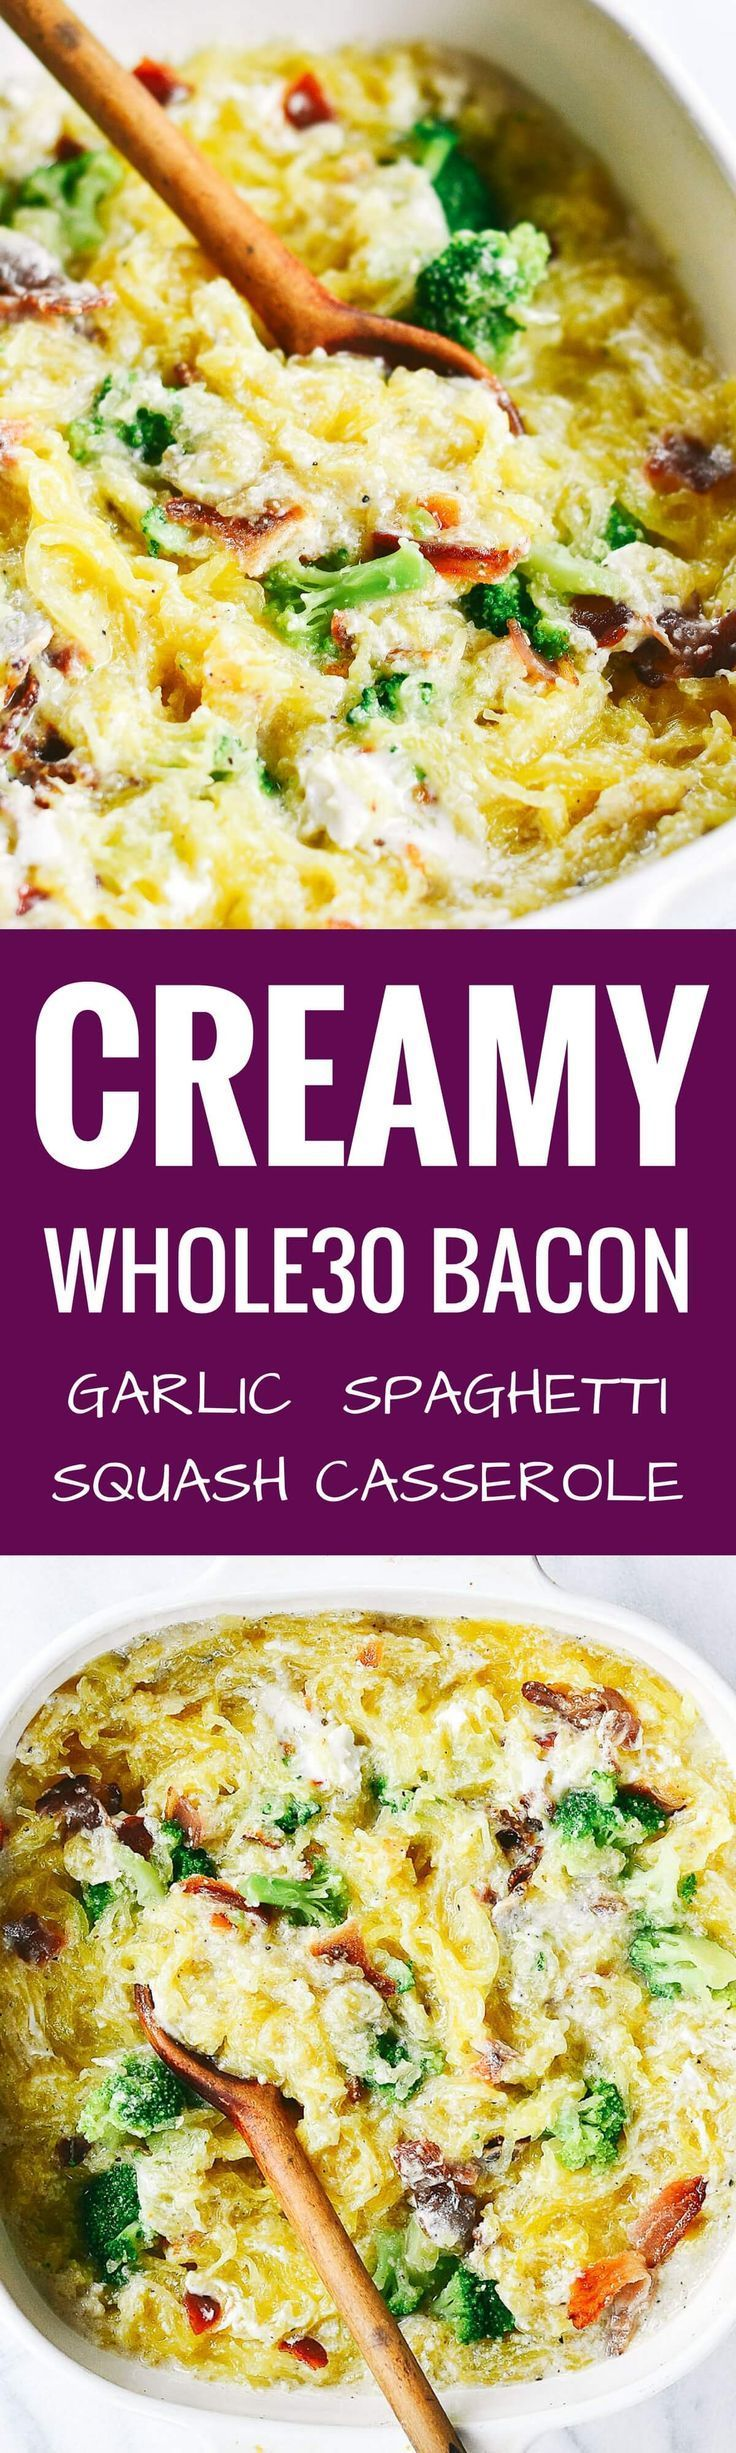 Easy whole30 creamy bacon garlic spaghetti squash bake. Paleo, healthy, and easy to make! Get ready to dig into some serious delicious and healthy eats!! How to cook spaghetti squash. Healthy spaghetti squash bake. Easy whole30 dinner recipes. Whole30 recipes. Whole30 lunch. Whole30 recipes just for you. Whole30 meal planning. Whole30 meal prep. Healthy paleo meals. Healthy Whole30 recipes. Easy Whole30 recipes.